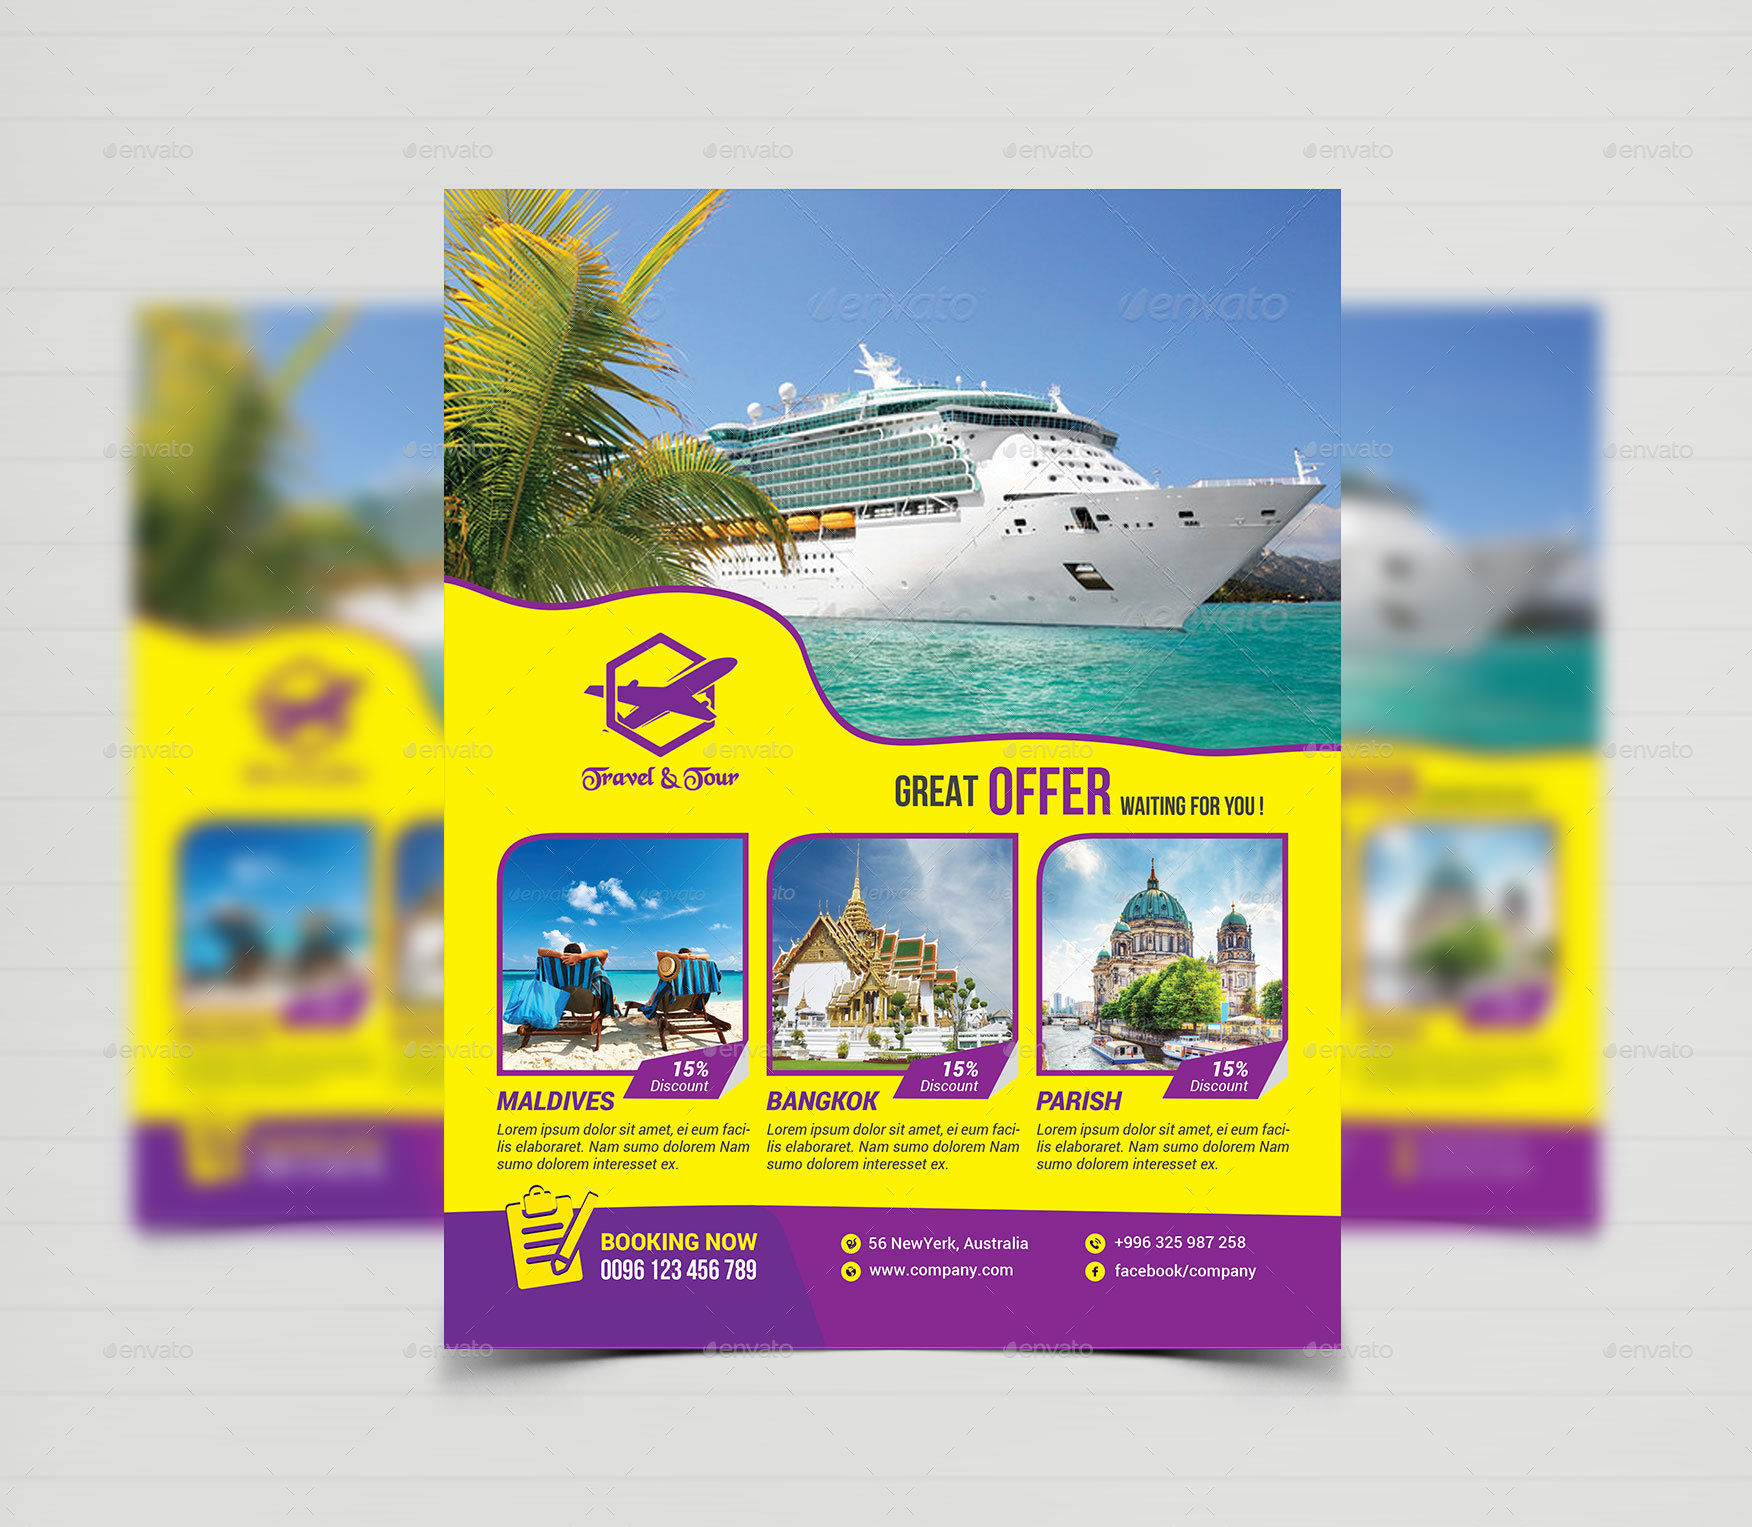 Tourism Events Calendar Flyer Template: Travel Tours Flyer Templates By Creative-Touch